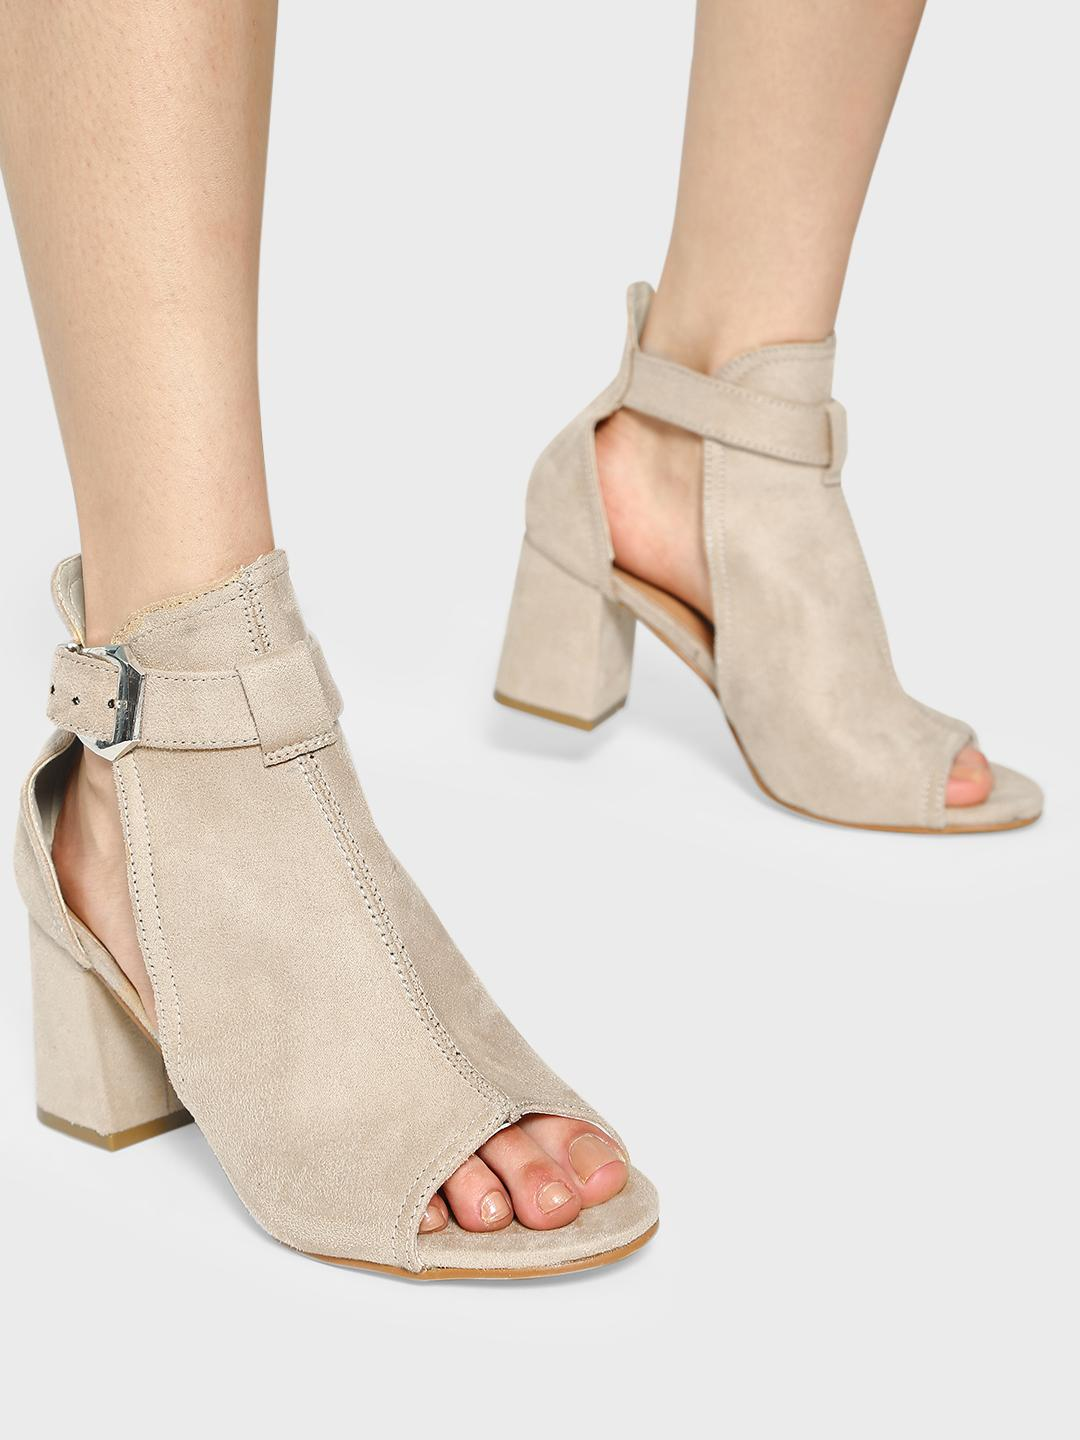 Truffle Collection Nude Peep-Toe Ankle Heeled Sandals 1